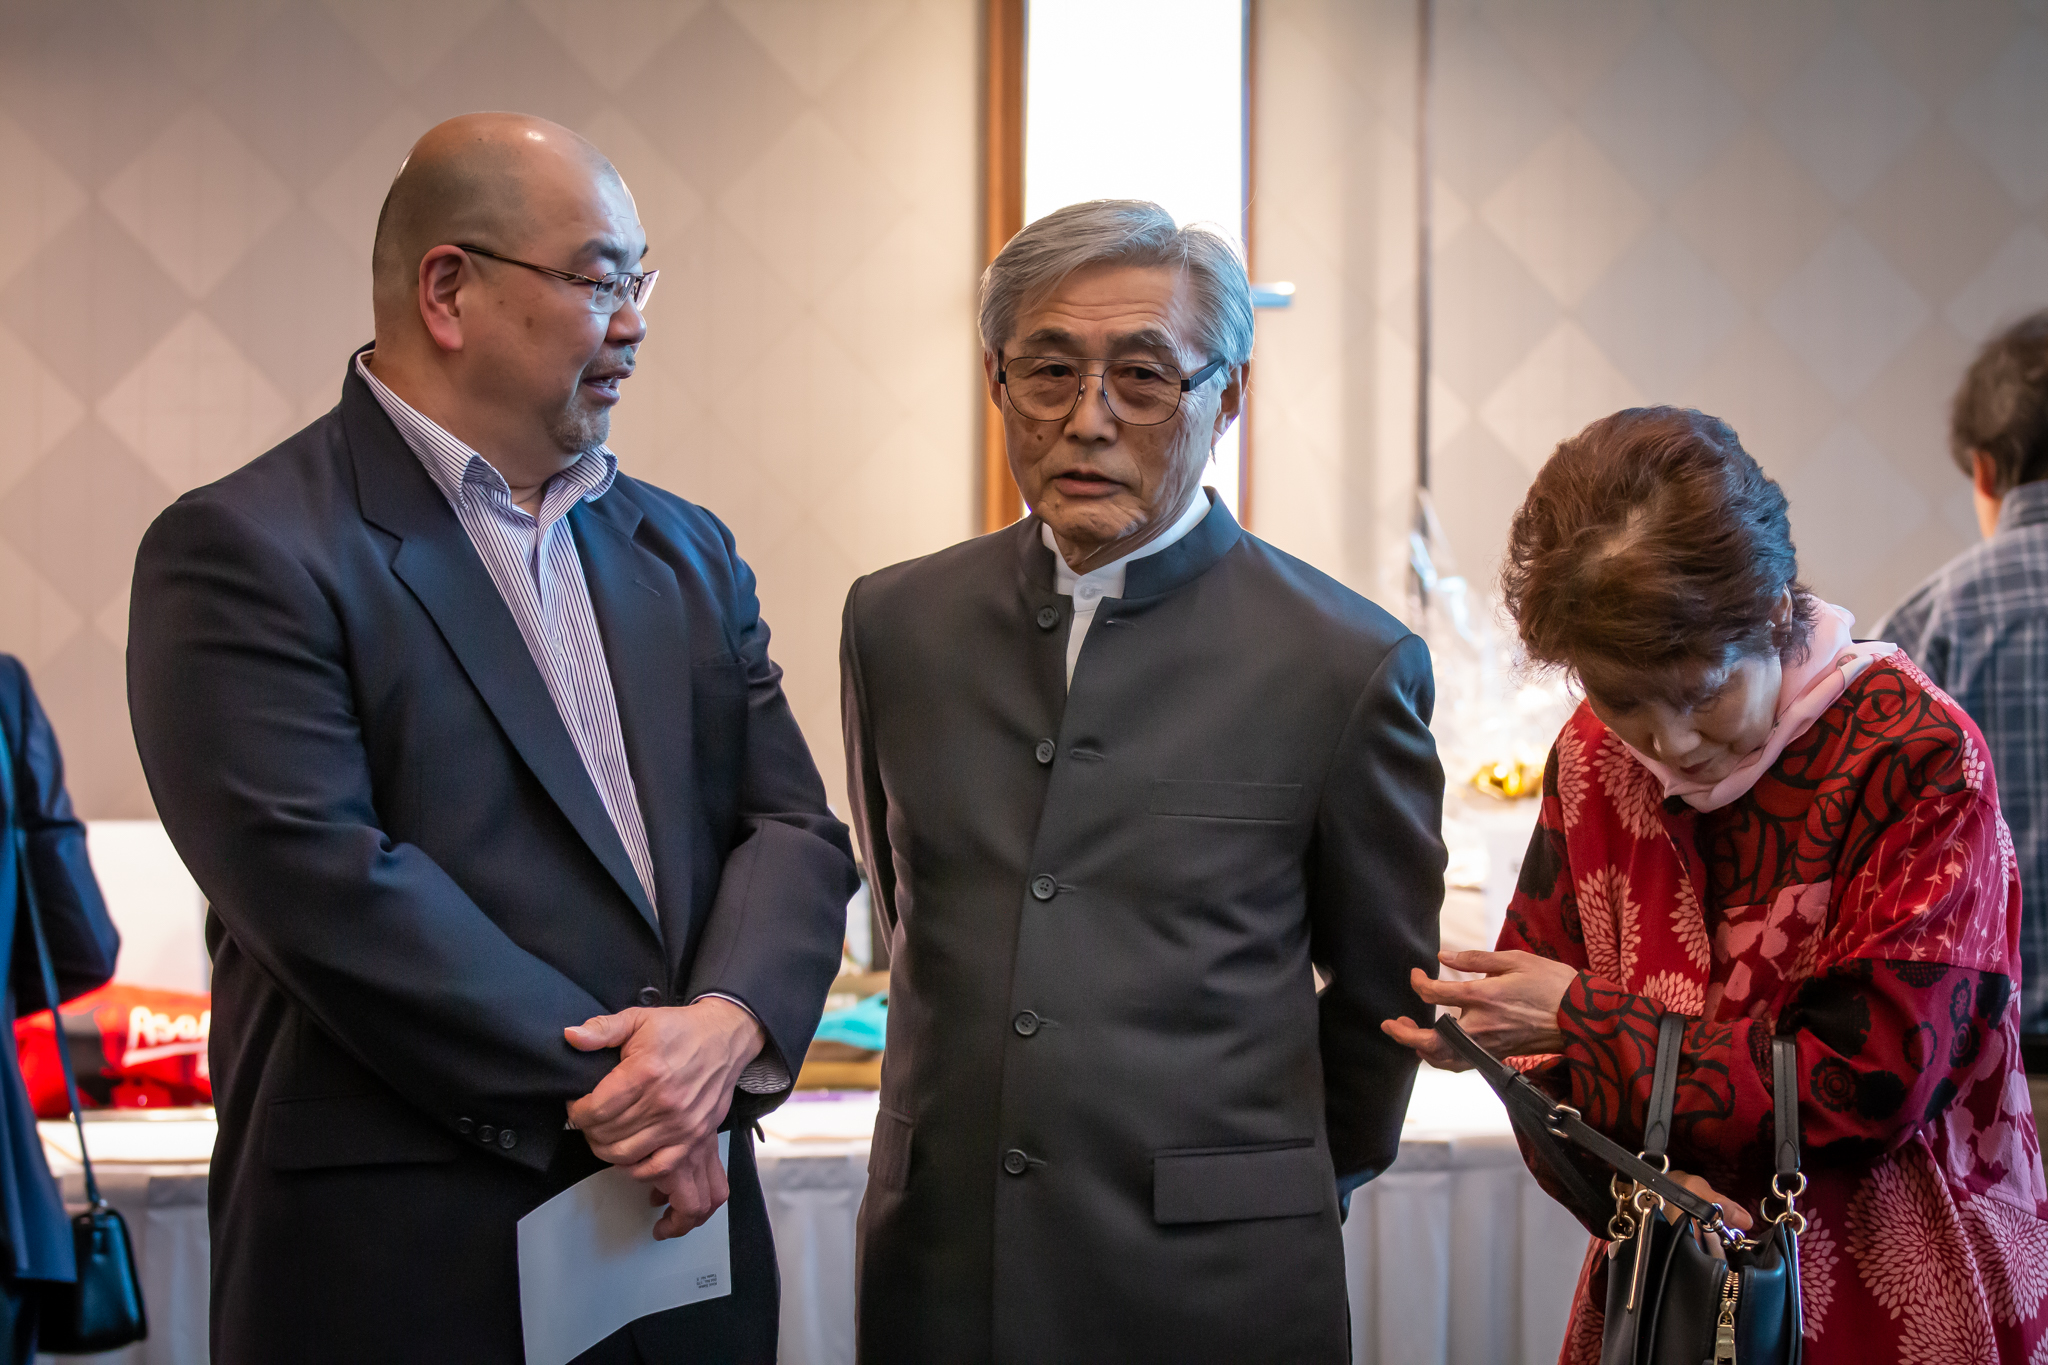 190310 Sakura Gala 2019 16-11-24 - Photo by Adam PW Smith.jpg